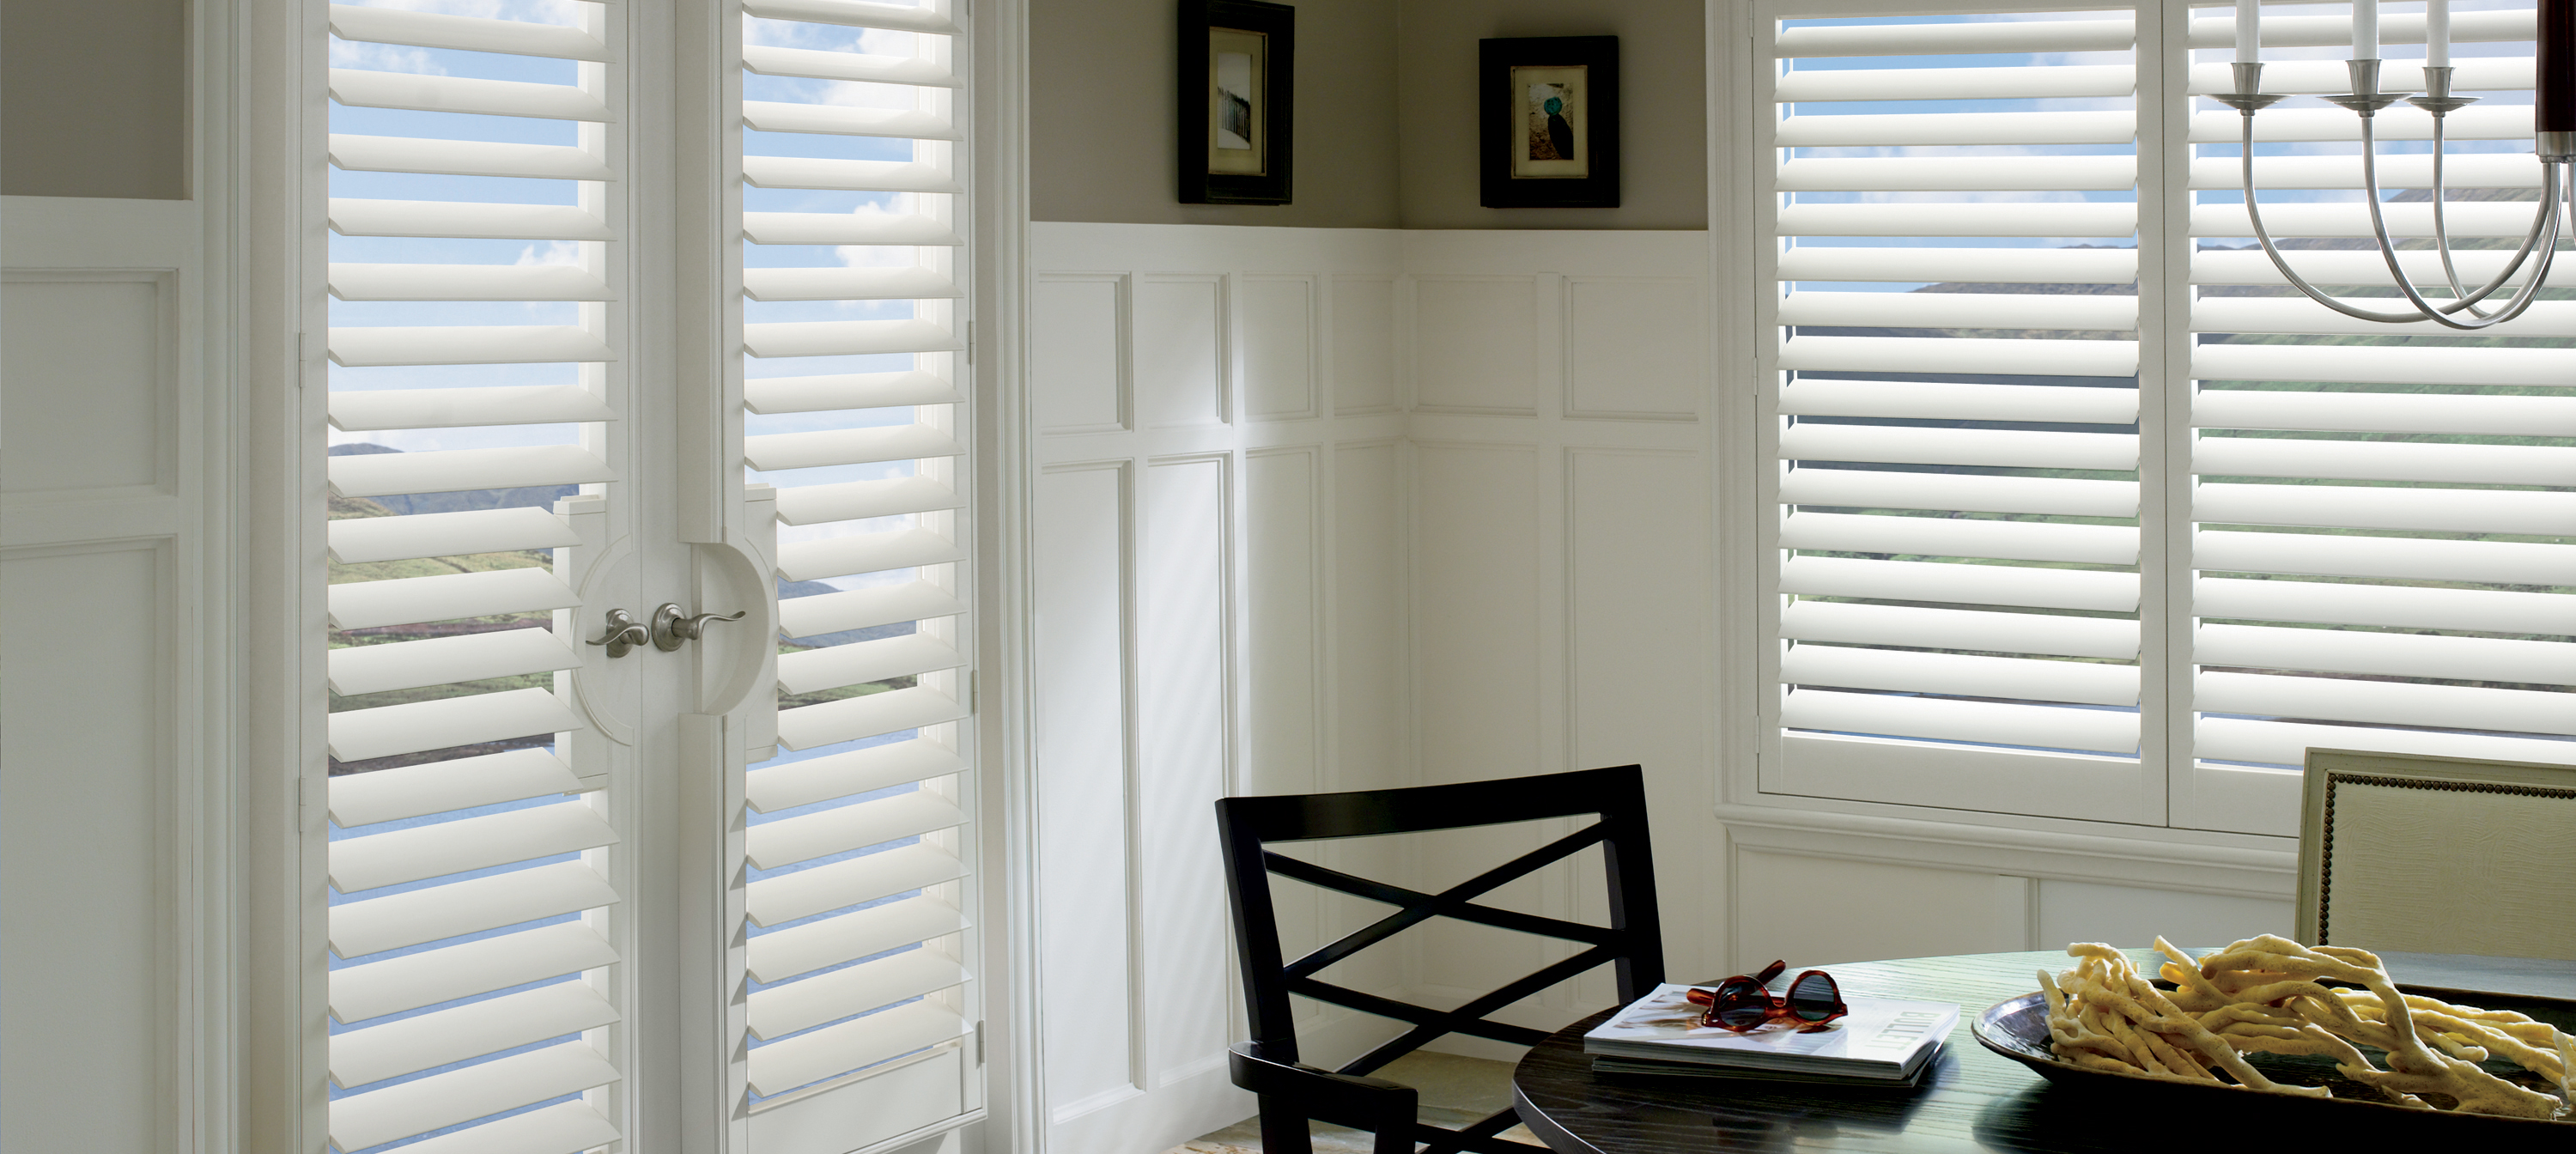 Kitchen & Dining Window Treatments Gallery   Window Coverings